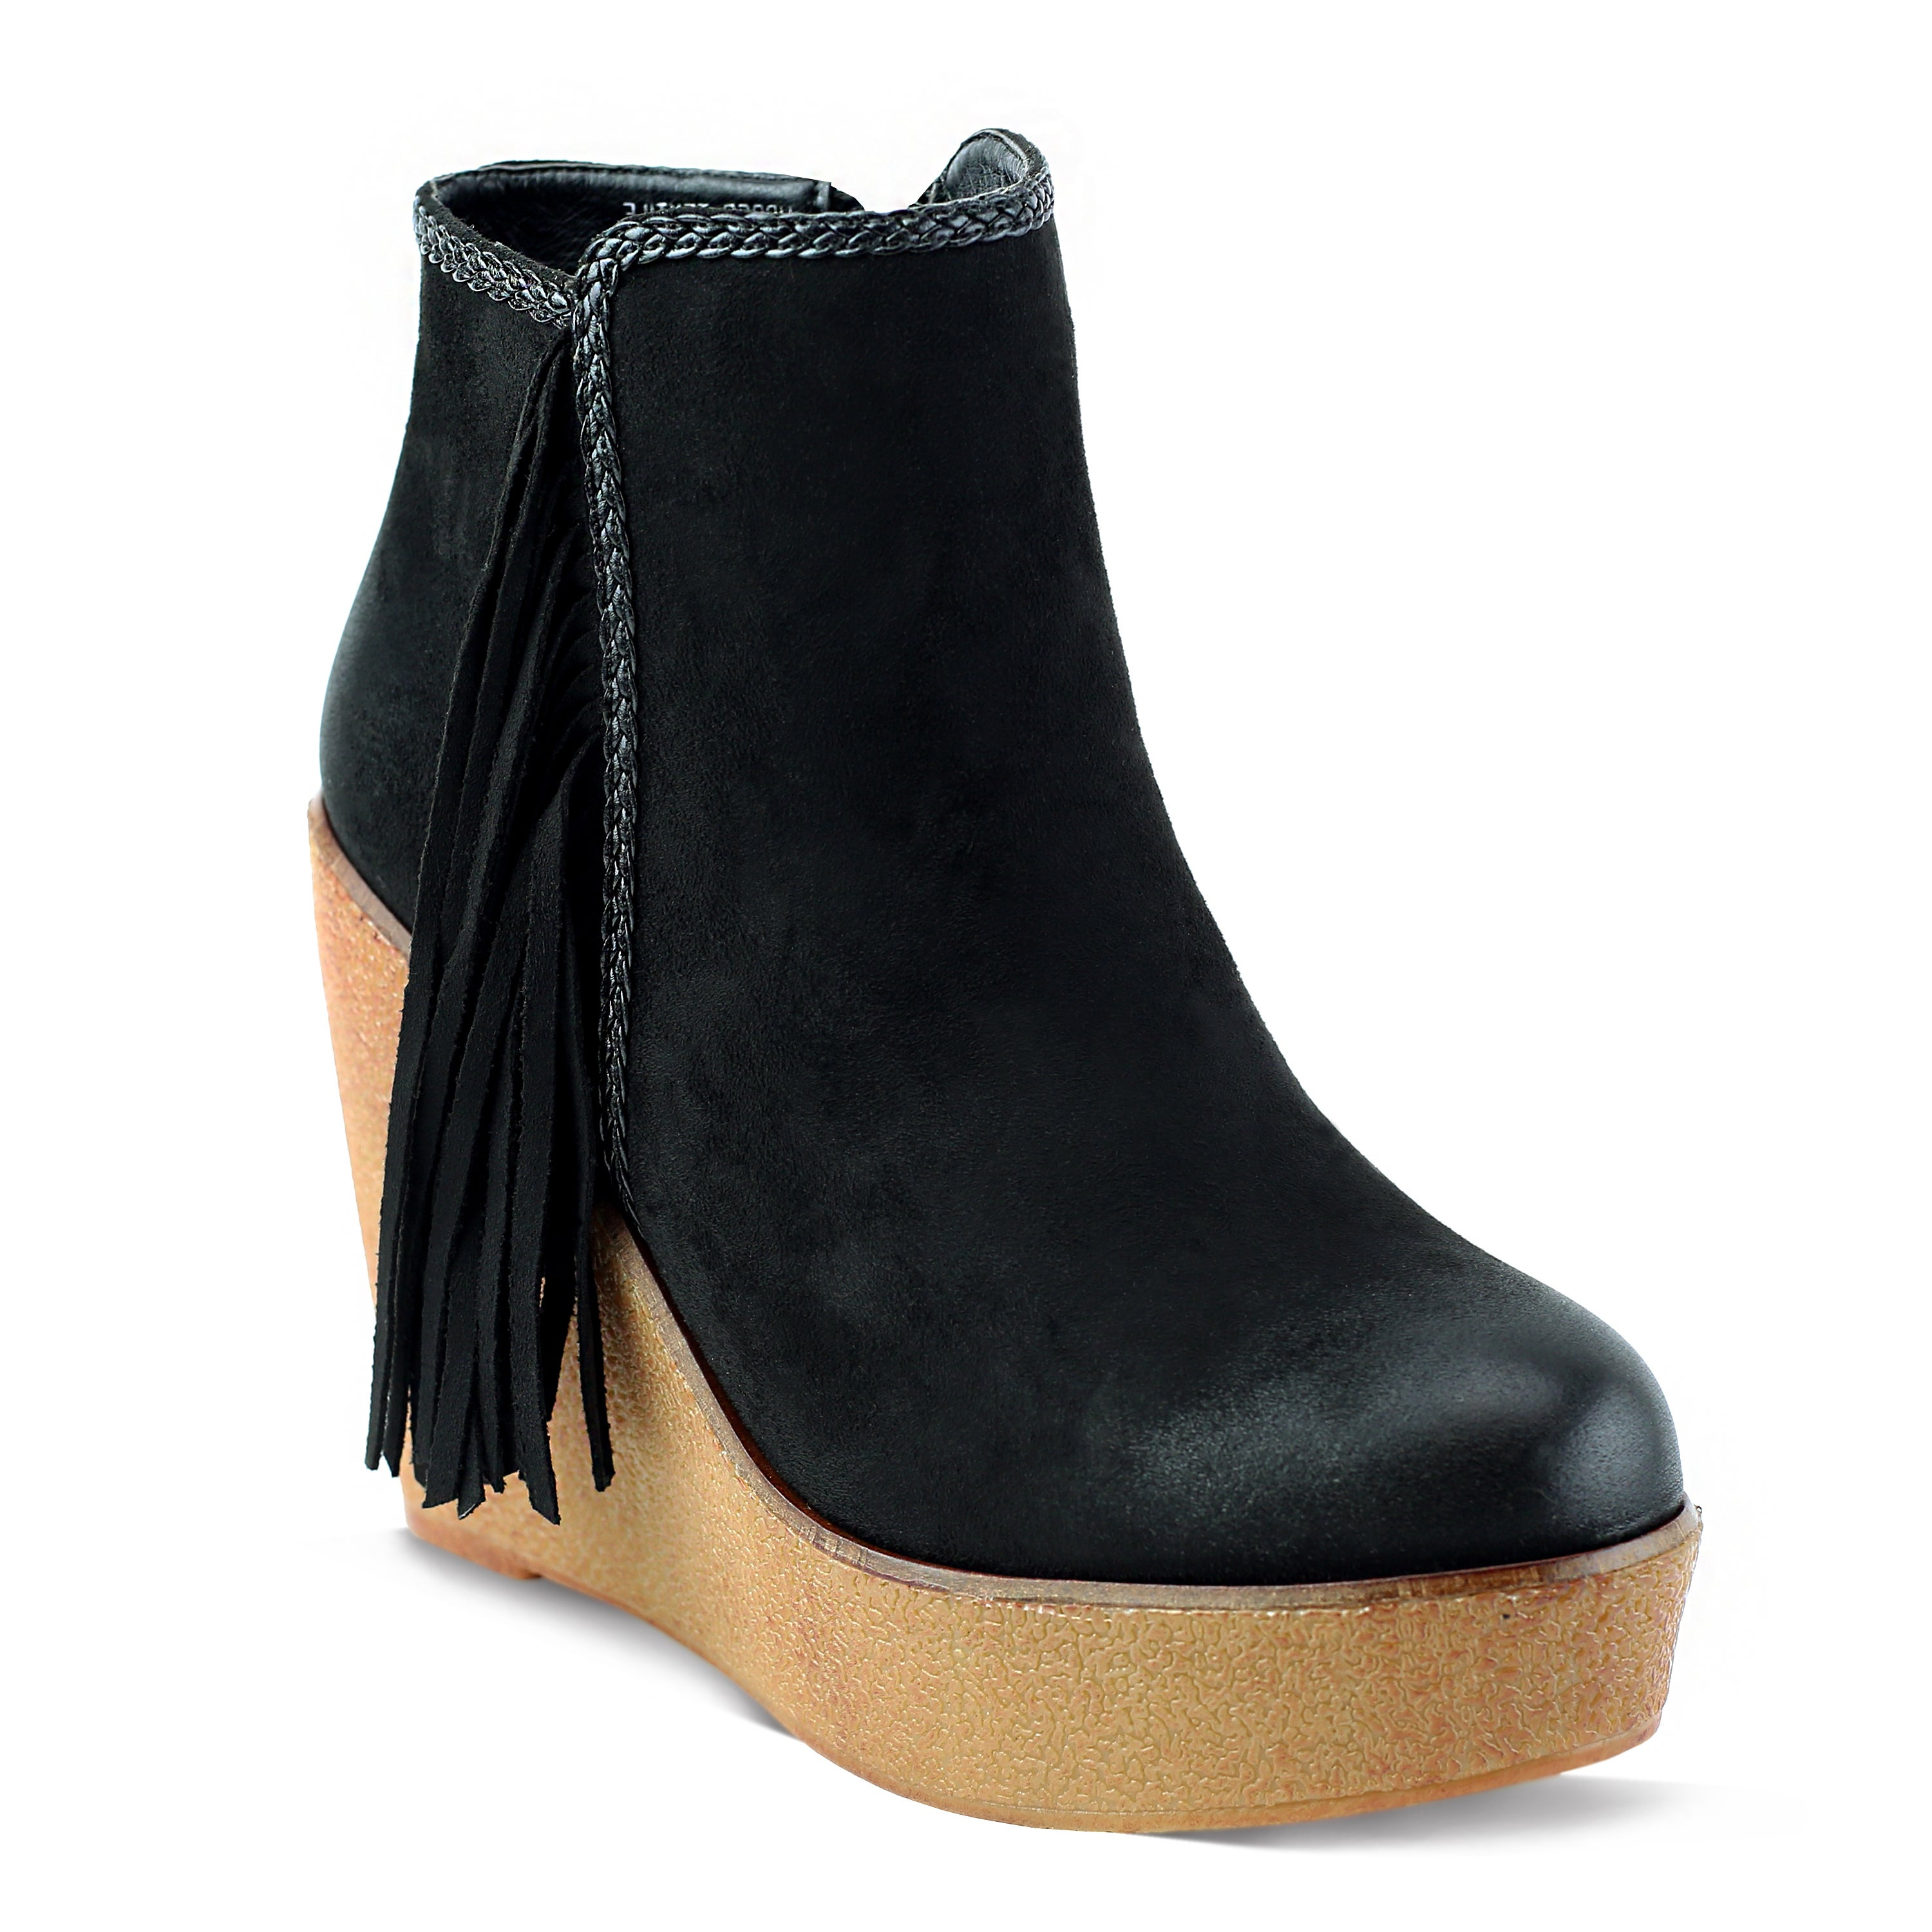 west burke black single women This website is dedicated to providing quality nine west burke heel strap bootie women information on the subject of shopping online here you will find helpful reviews, informative information and tips and much more.